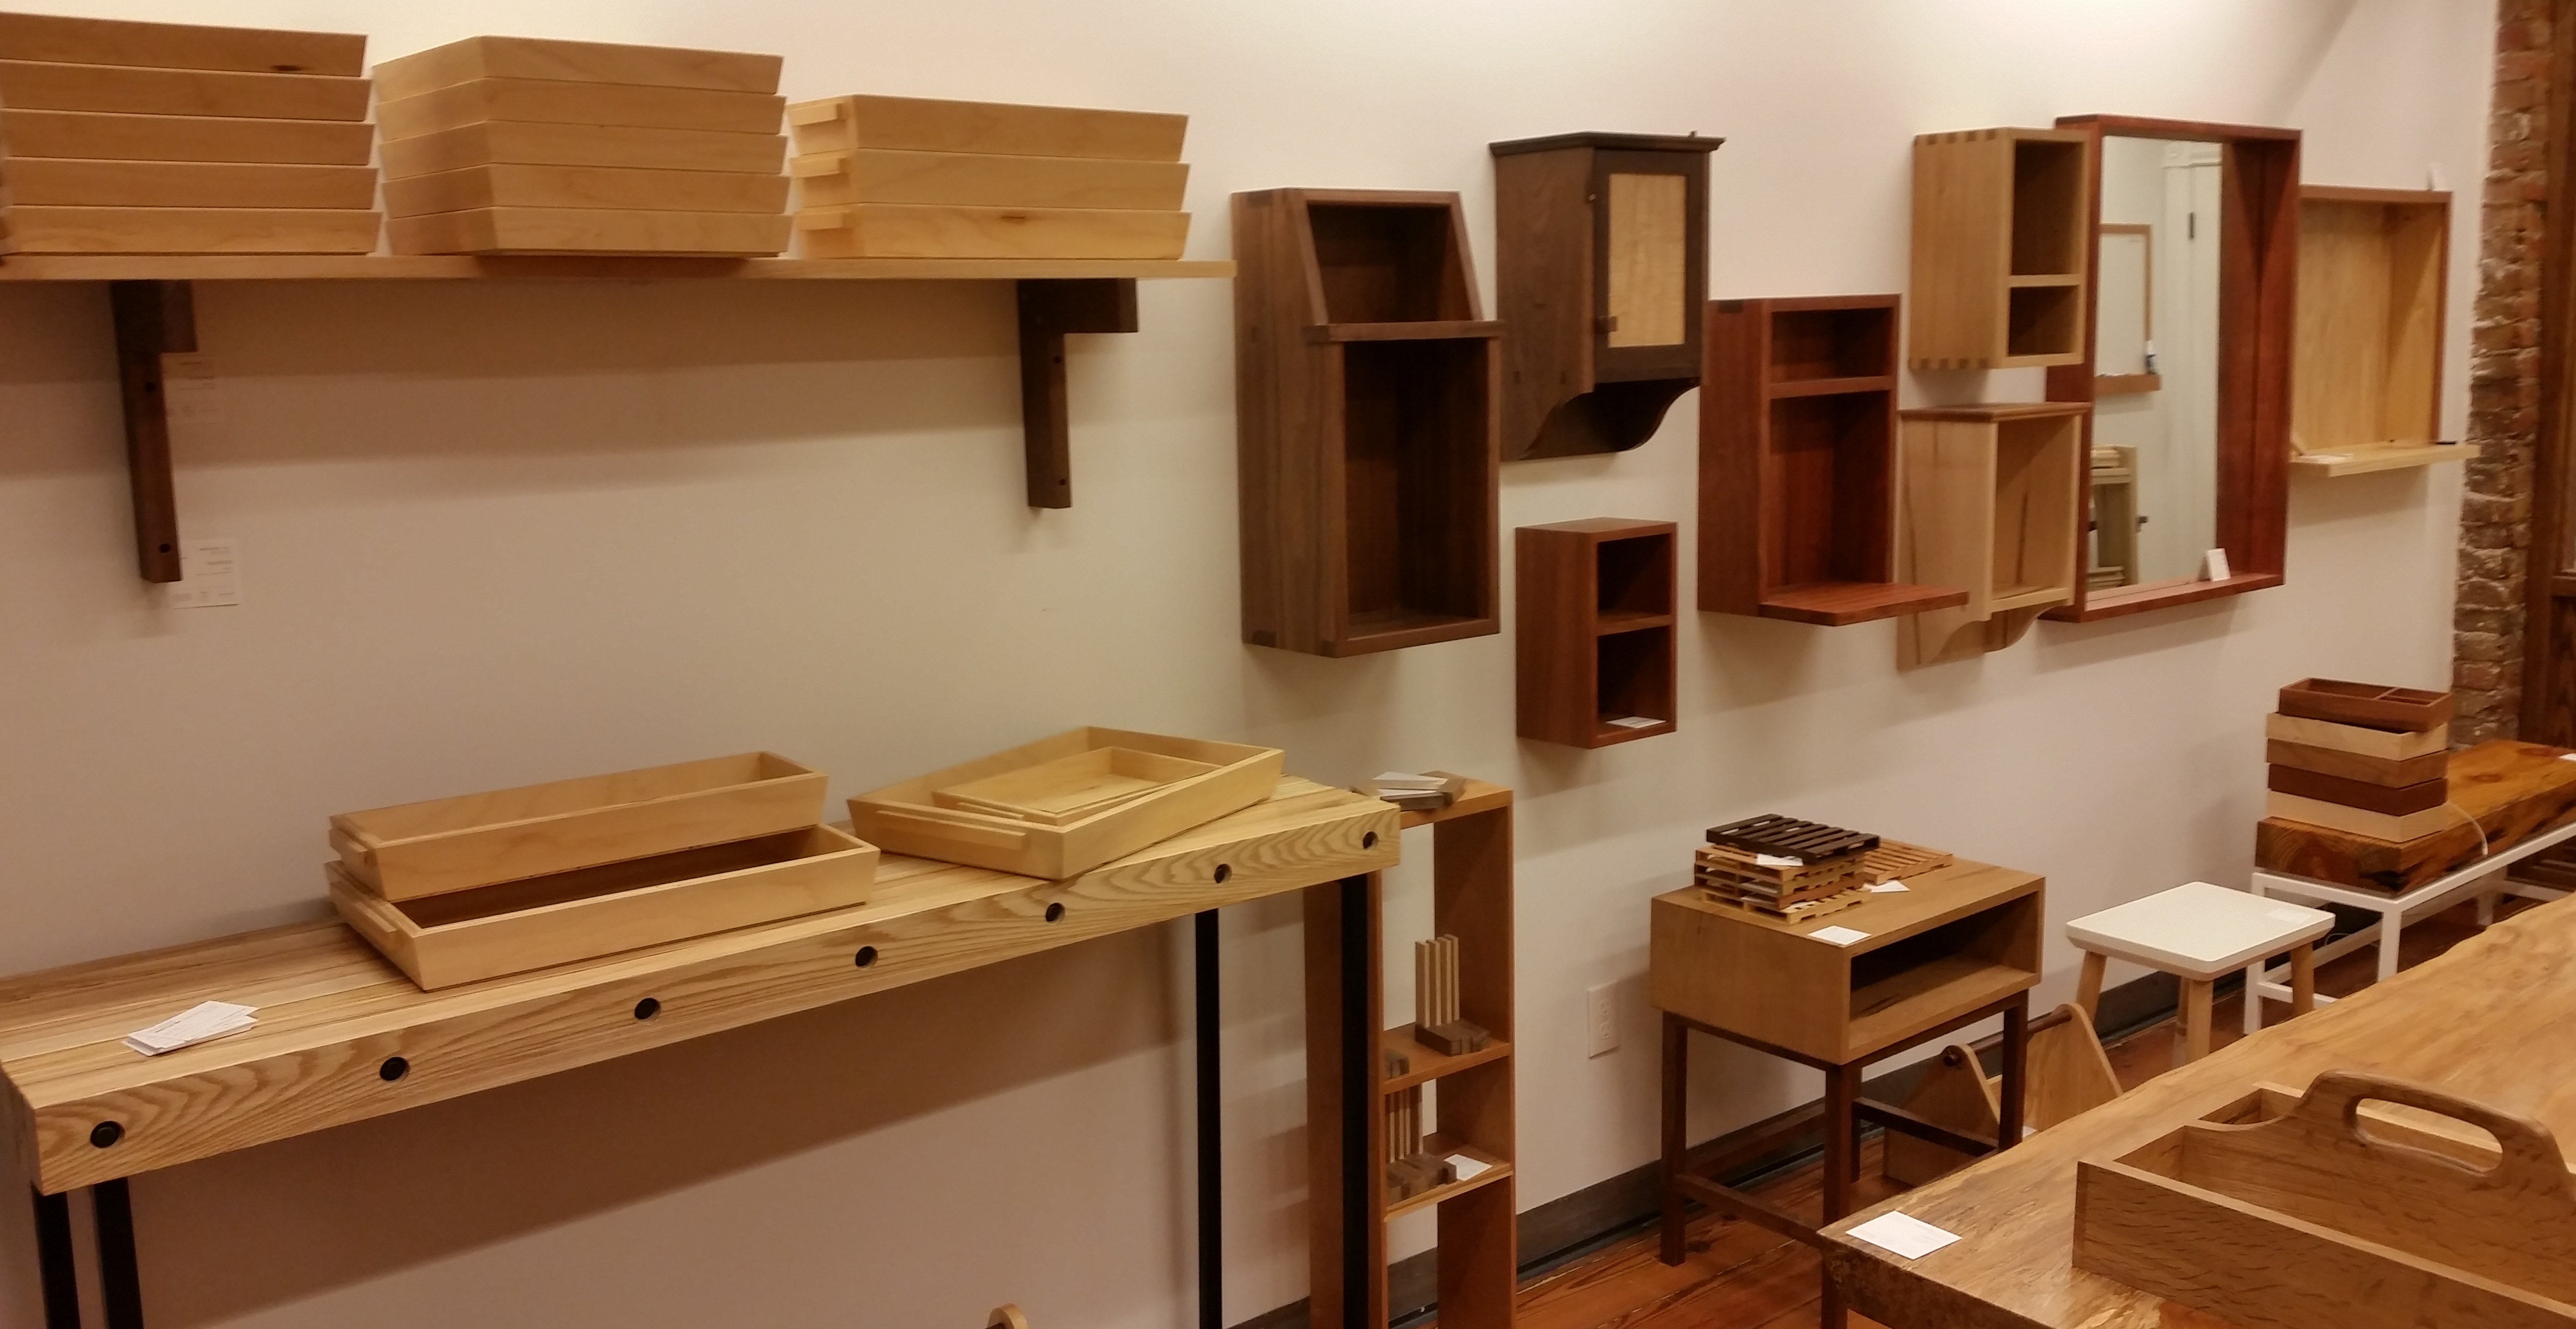 Furniture Designer/Builder Sets Up Shop Near Eastern Market ...